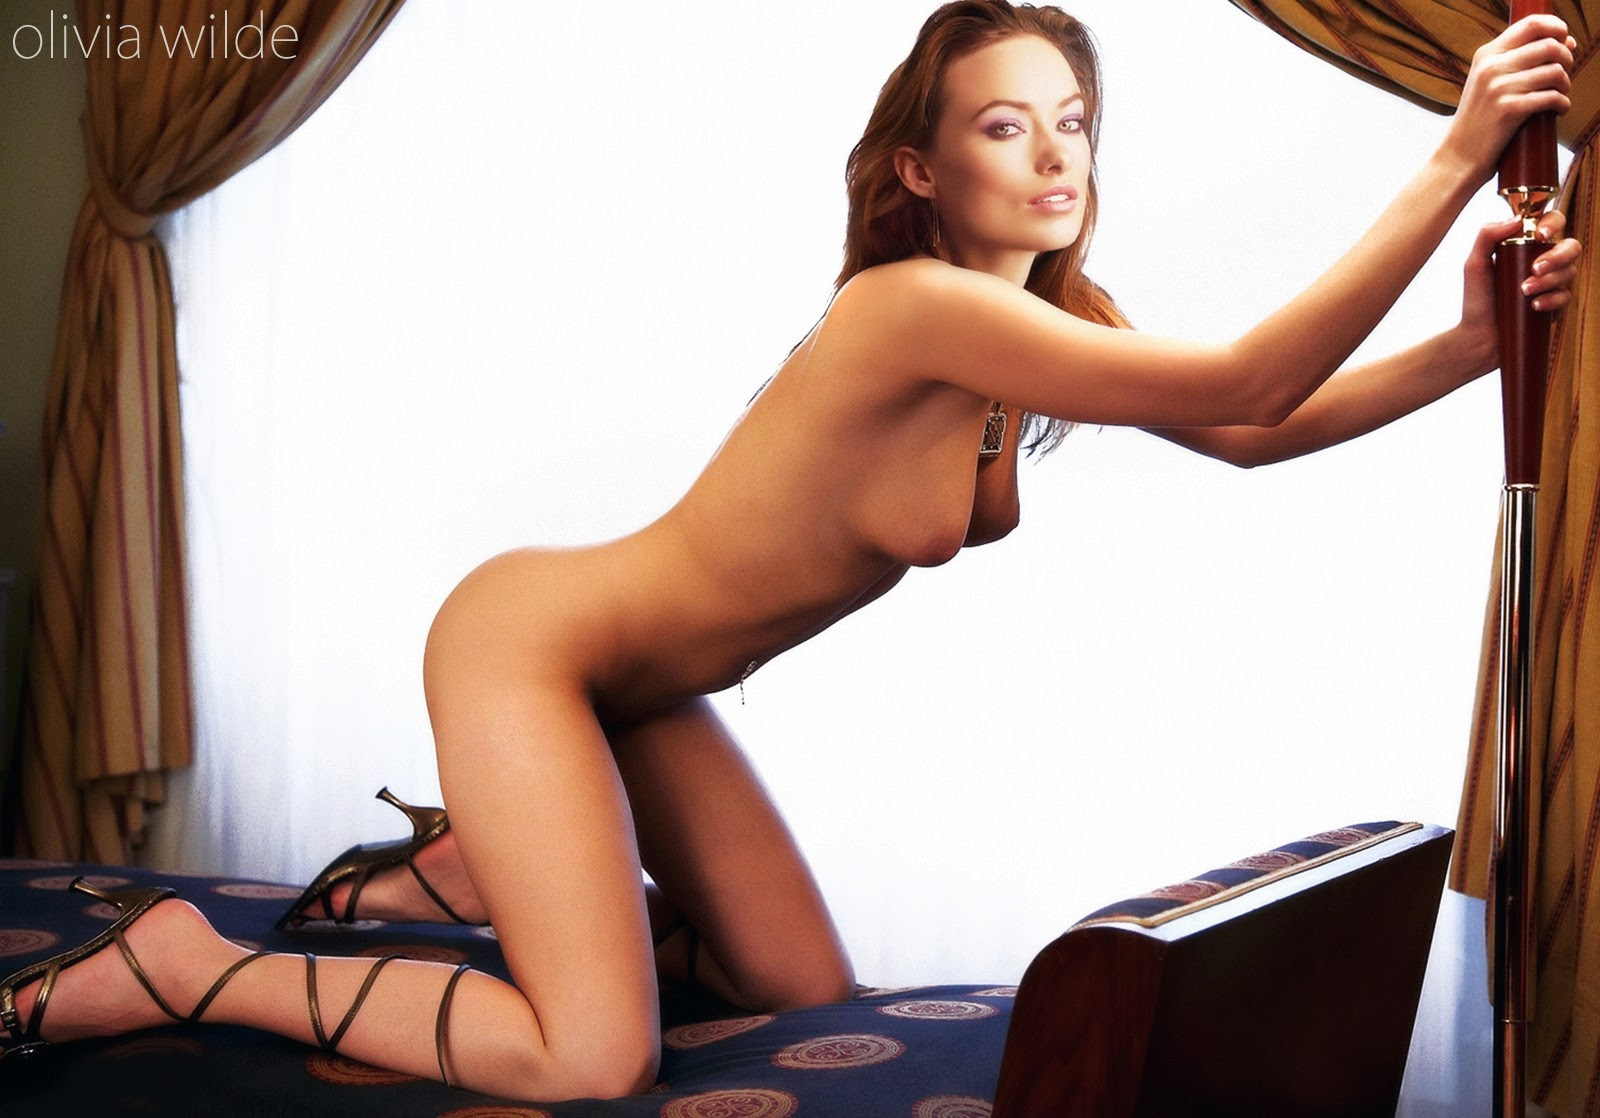 Olivia Wilde Nude Photos & Videos - Celeb Jihad